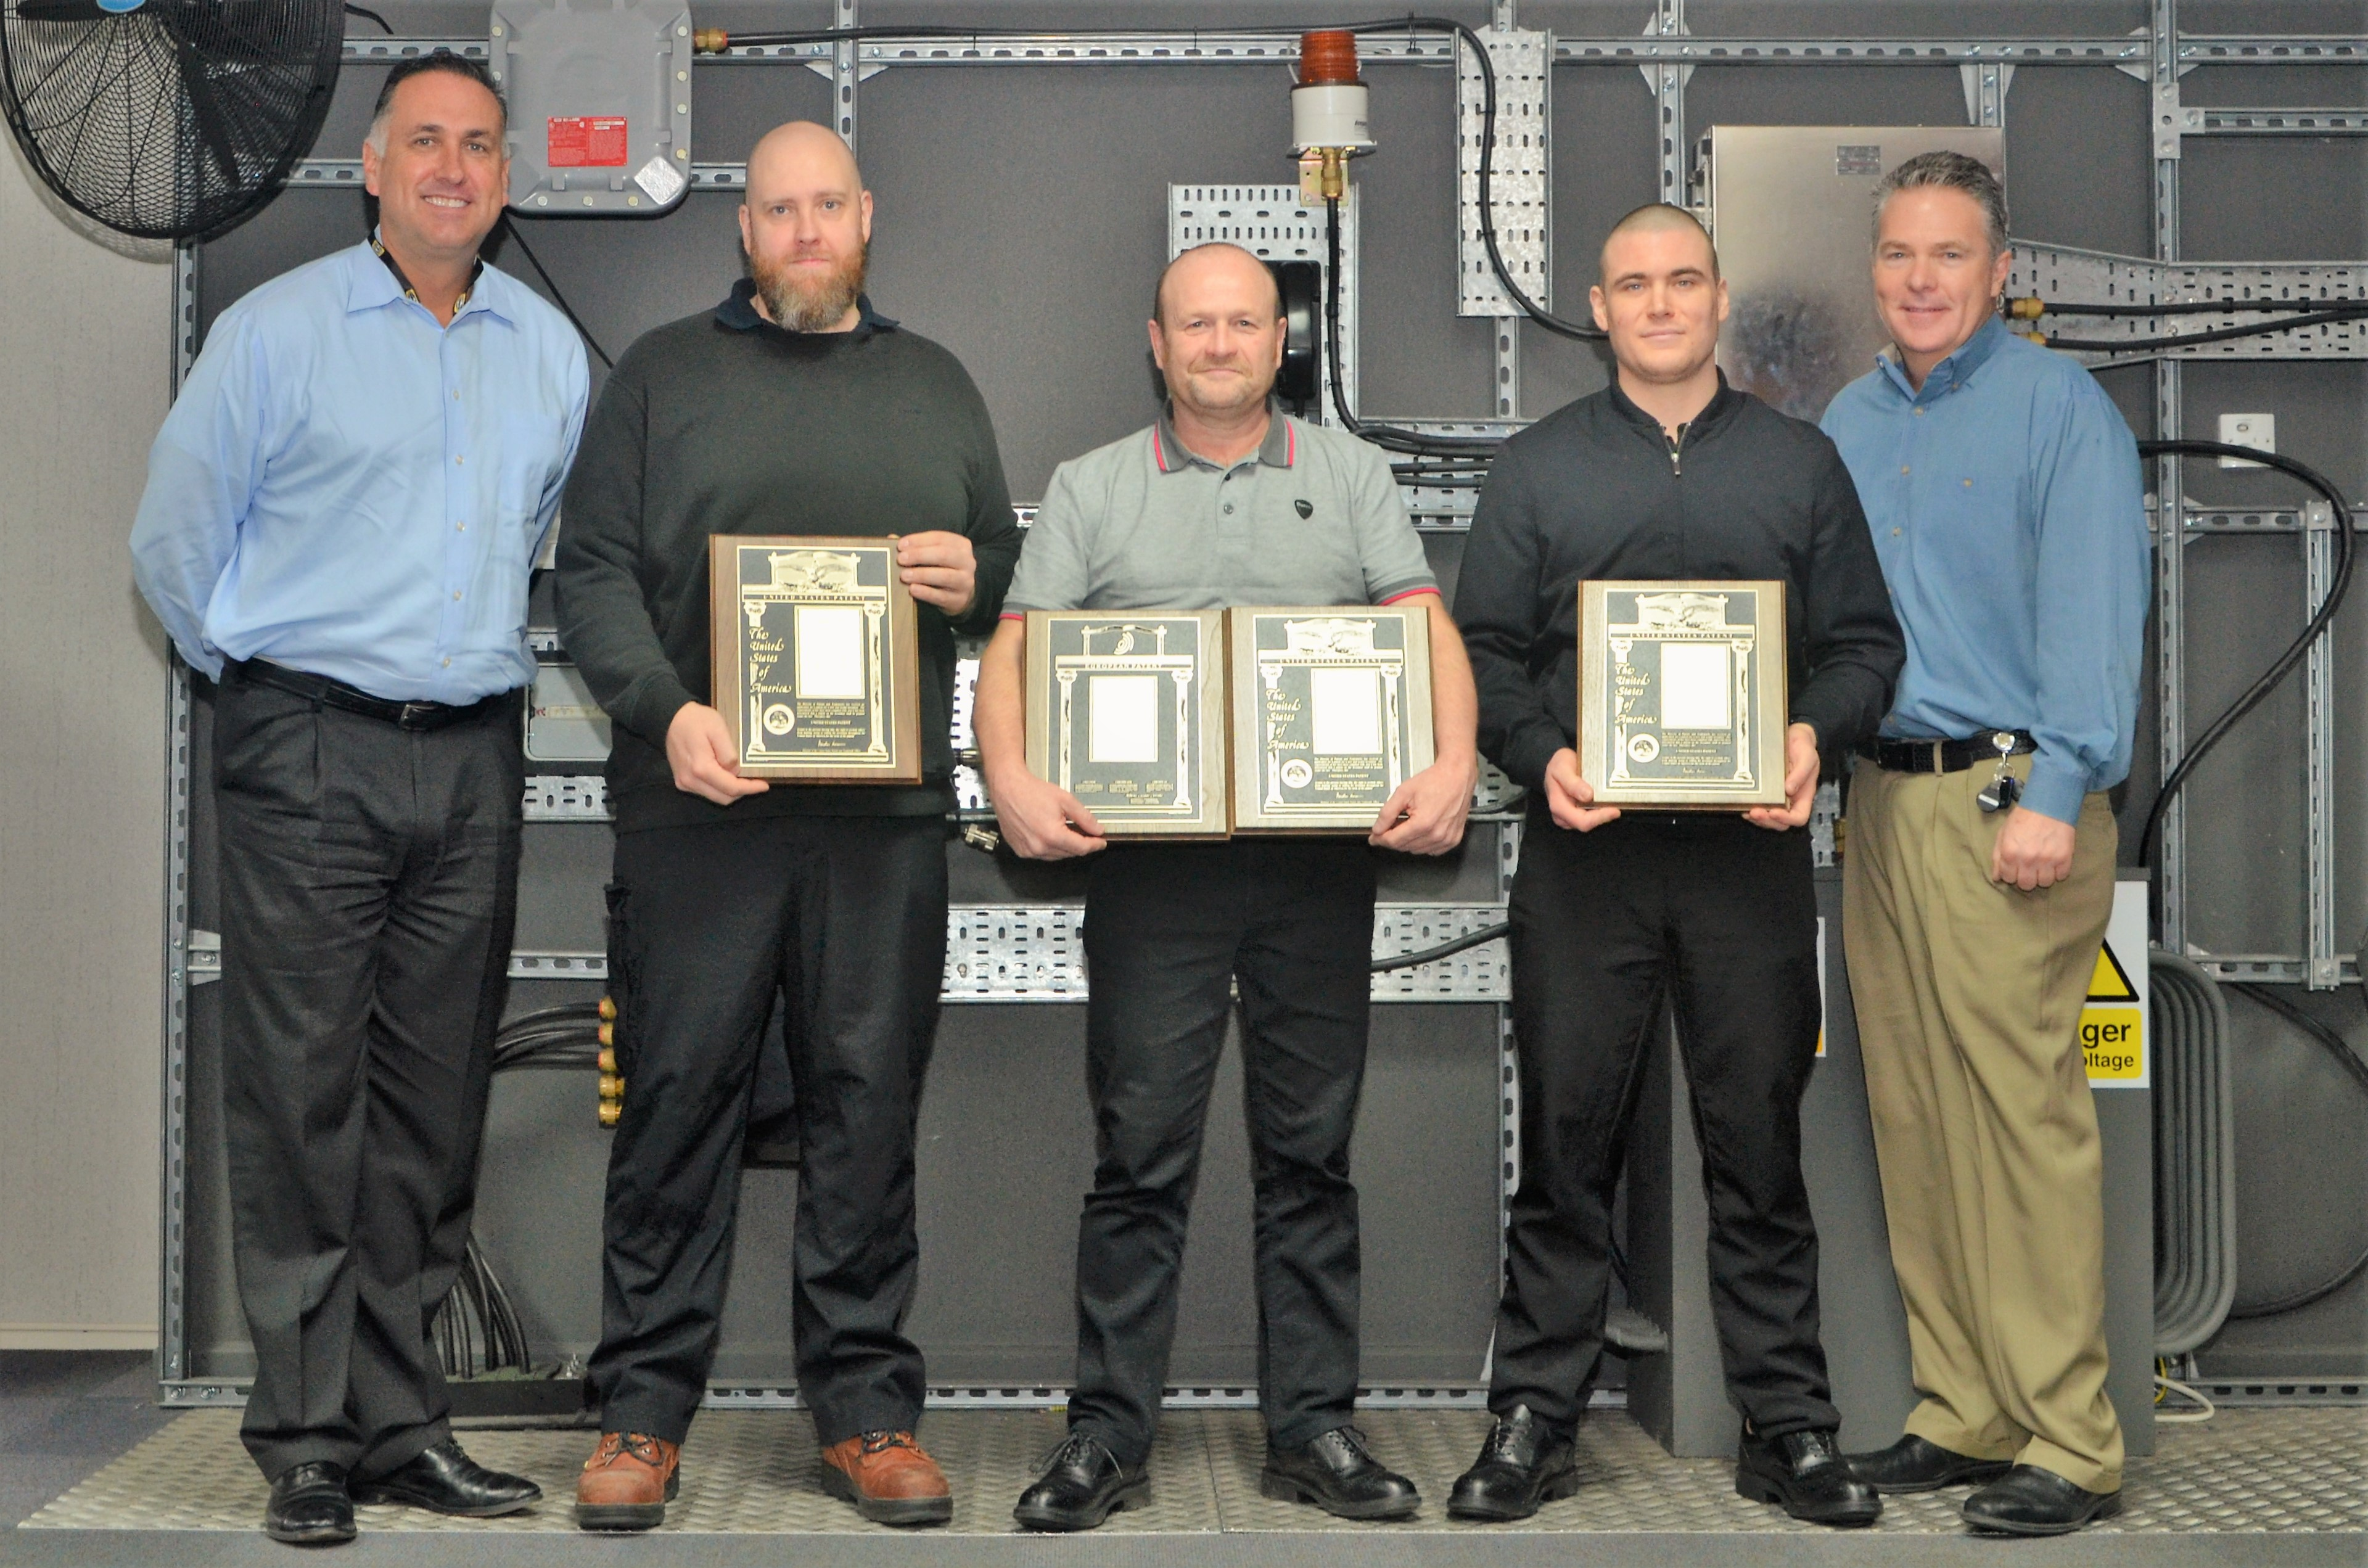 Carl Jackson, Jason Clark and Dean Renshaw are pictured being presented with Hubbell Patent Awards by Warren Jenkins, Vice President and General Manager or Hubbell Inc. and Steve Taafe, Director of Engineering at Killark.